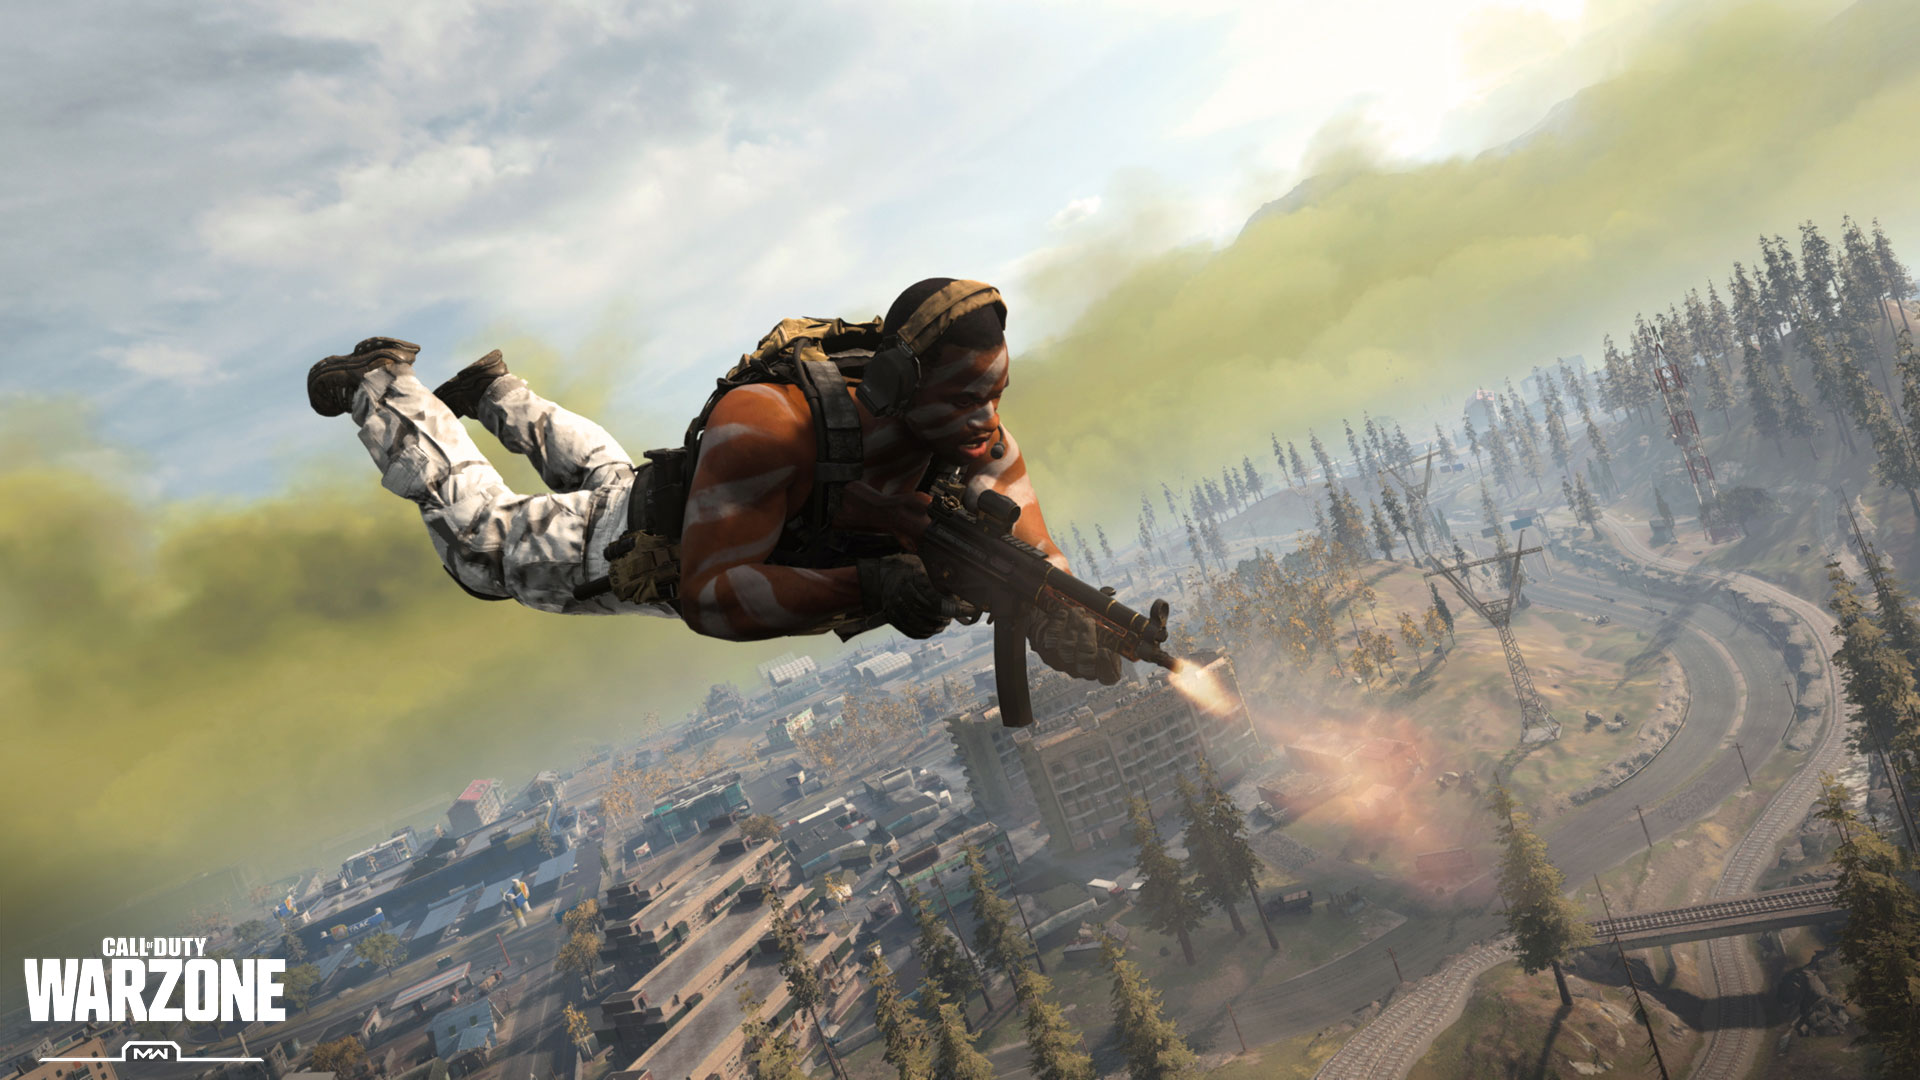 Warzone wallpapers and background images. In Game Modes Battle Royale Solo